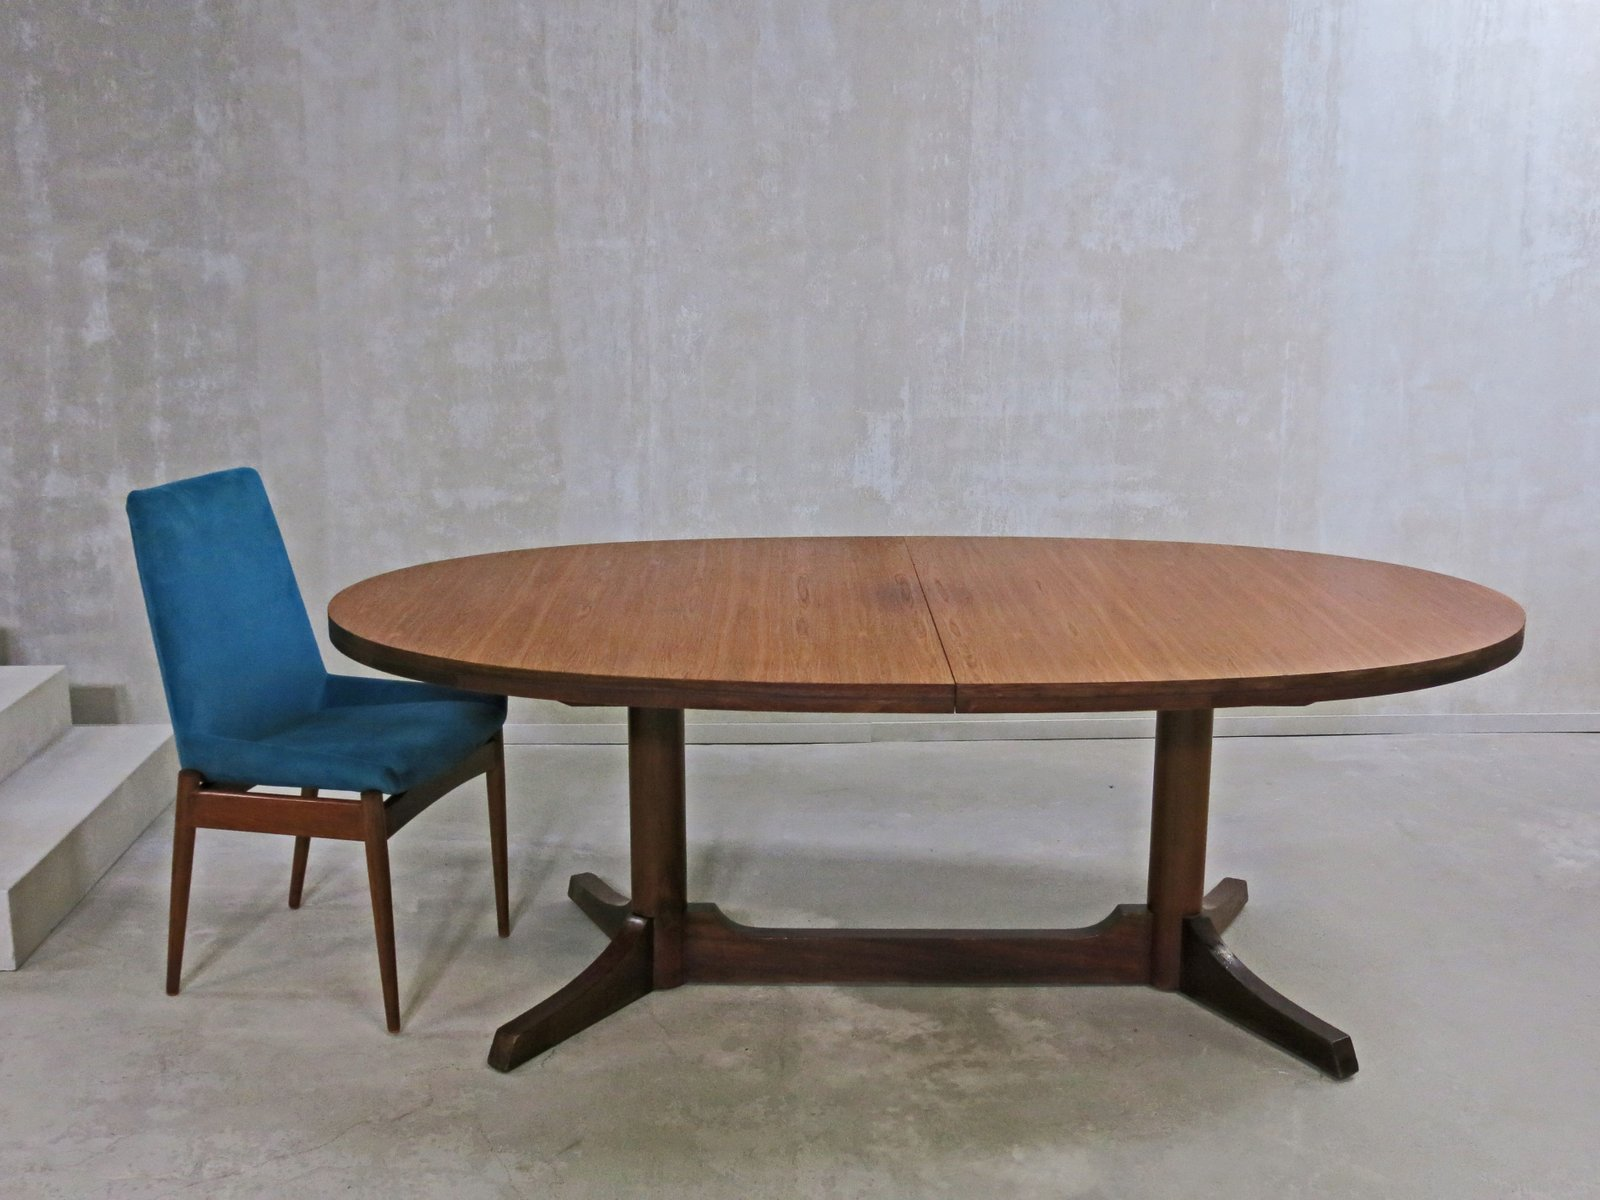 Oval Dining Table by Robert Heritage for Archie Shine 1960s for